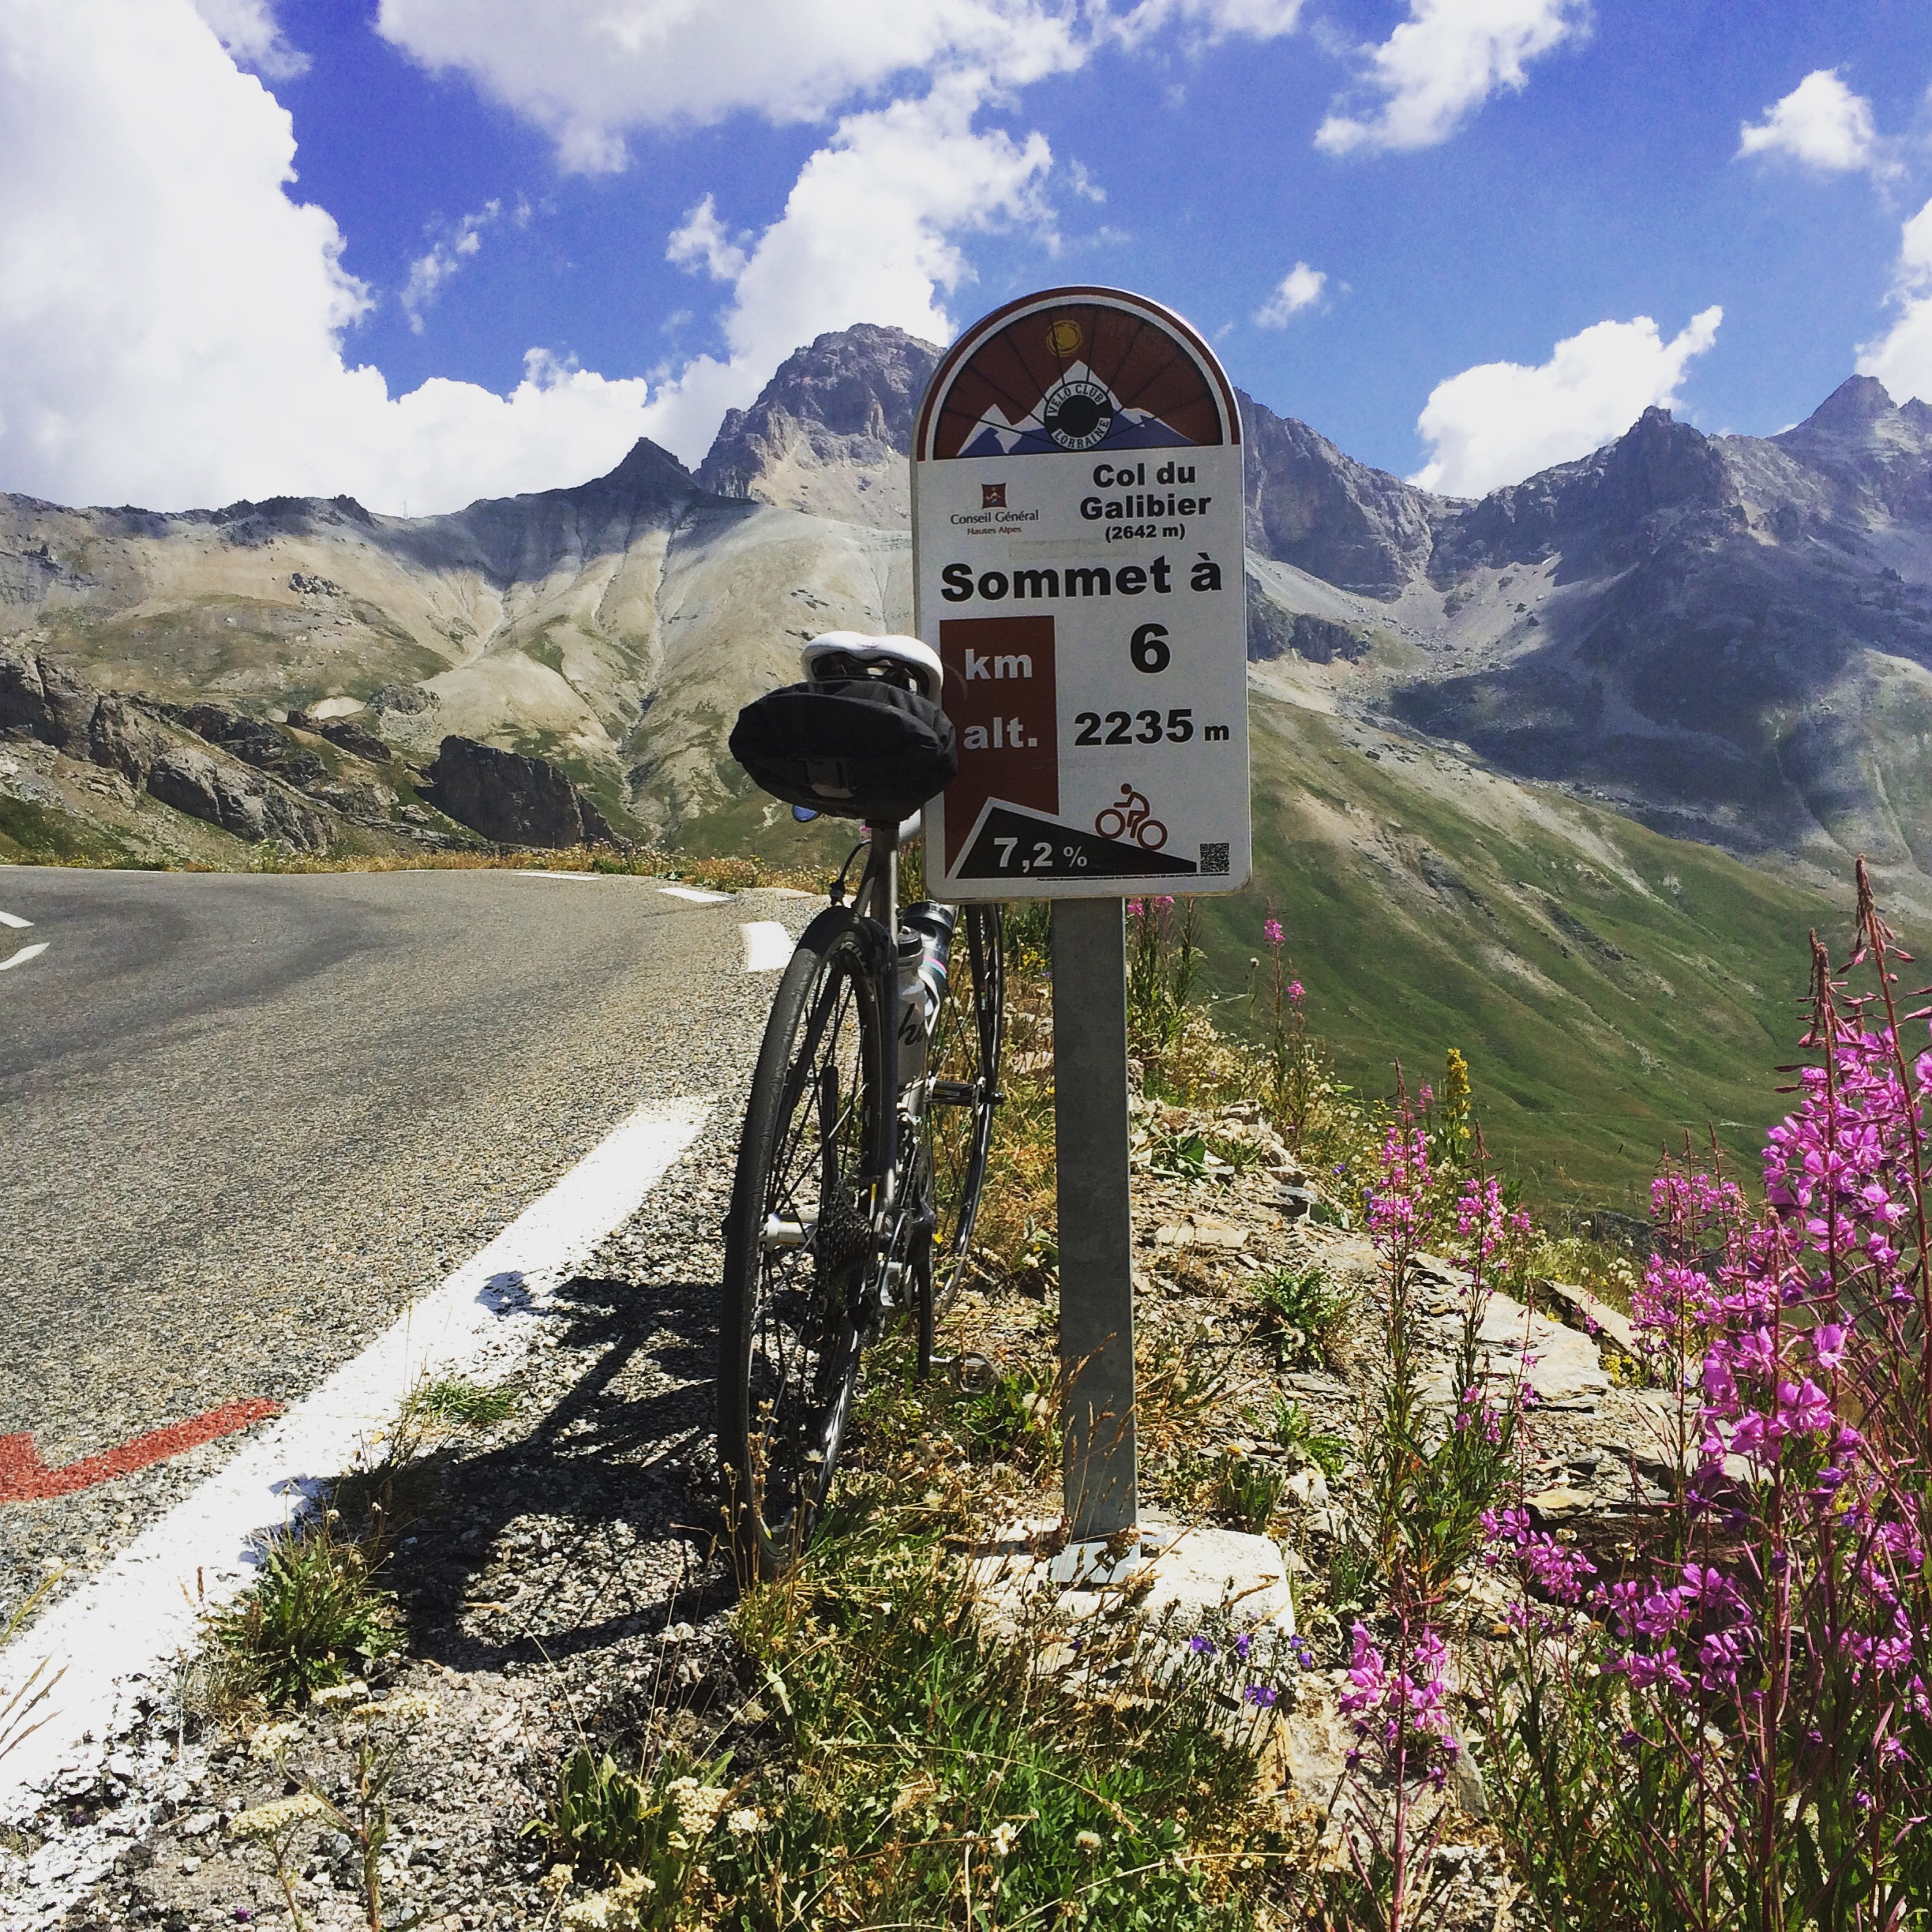 The Col du Galibier!